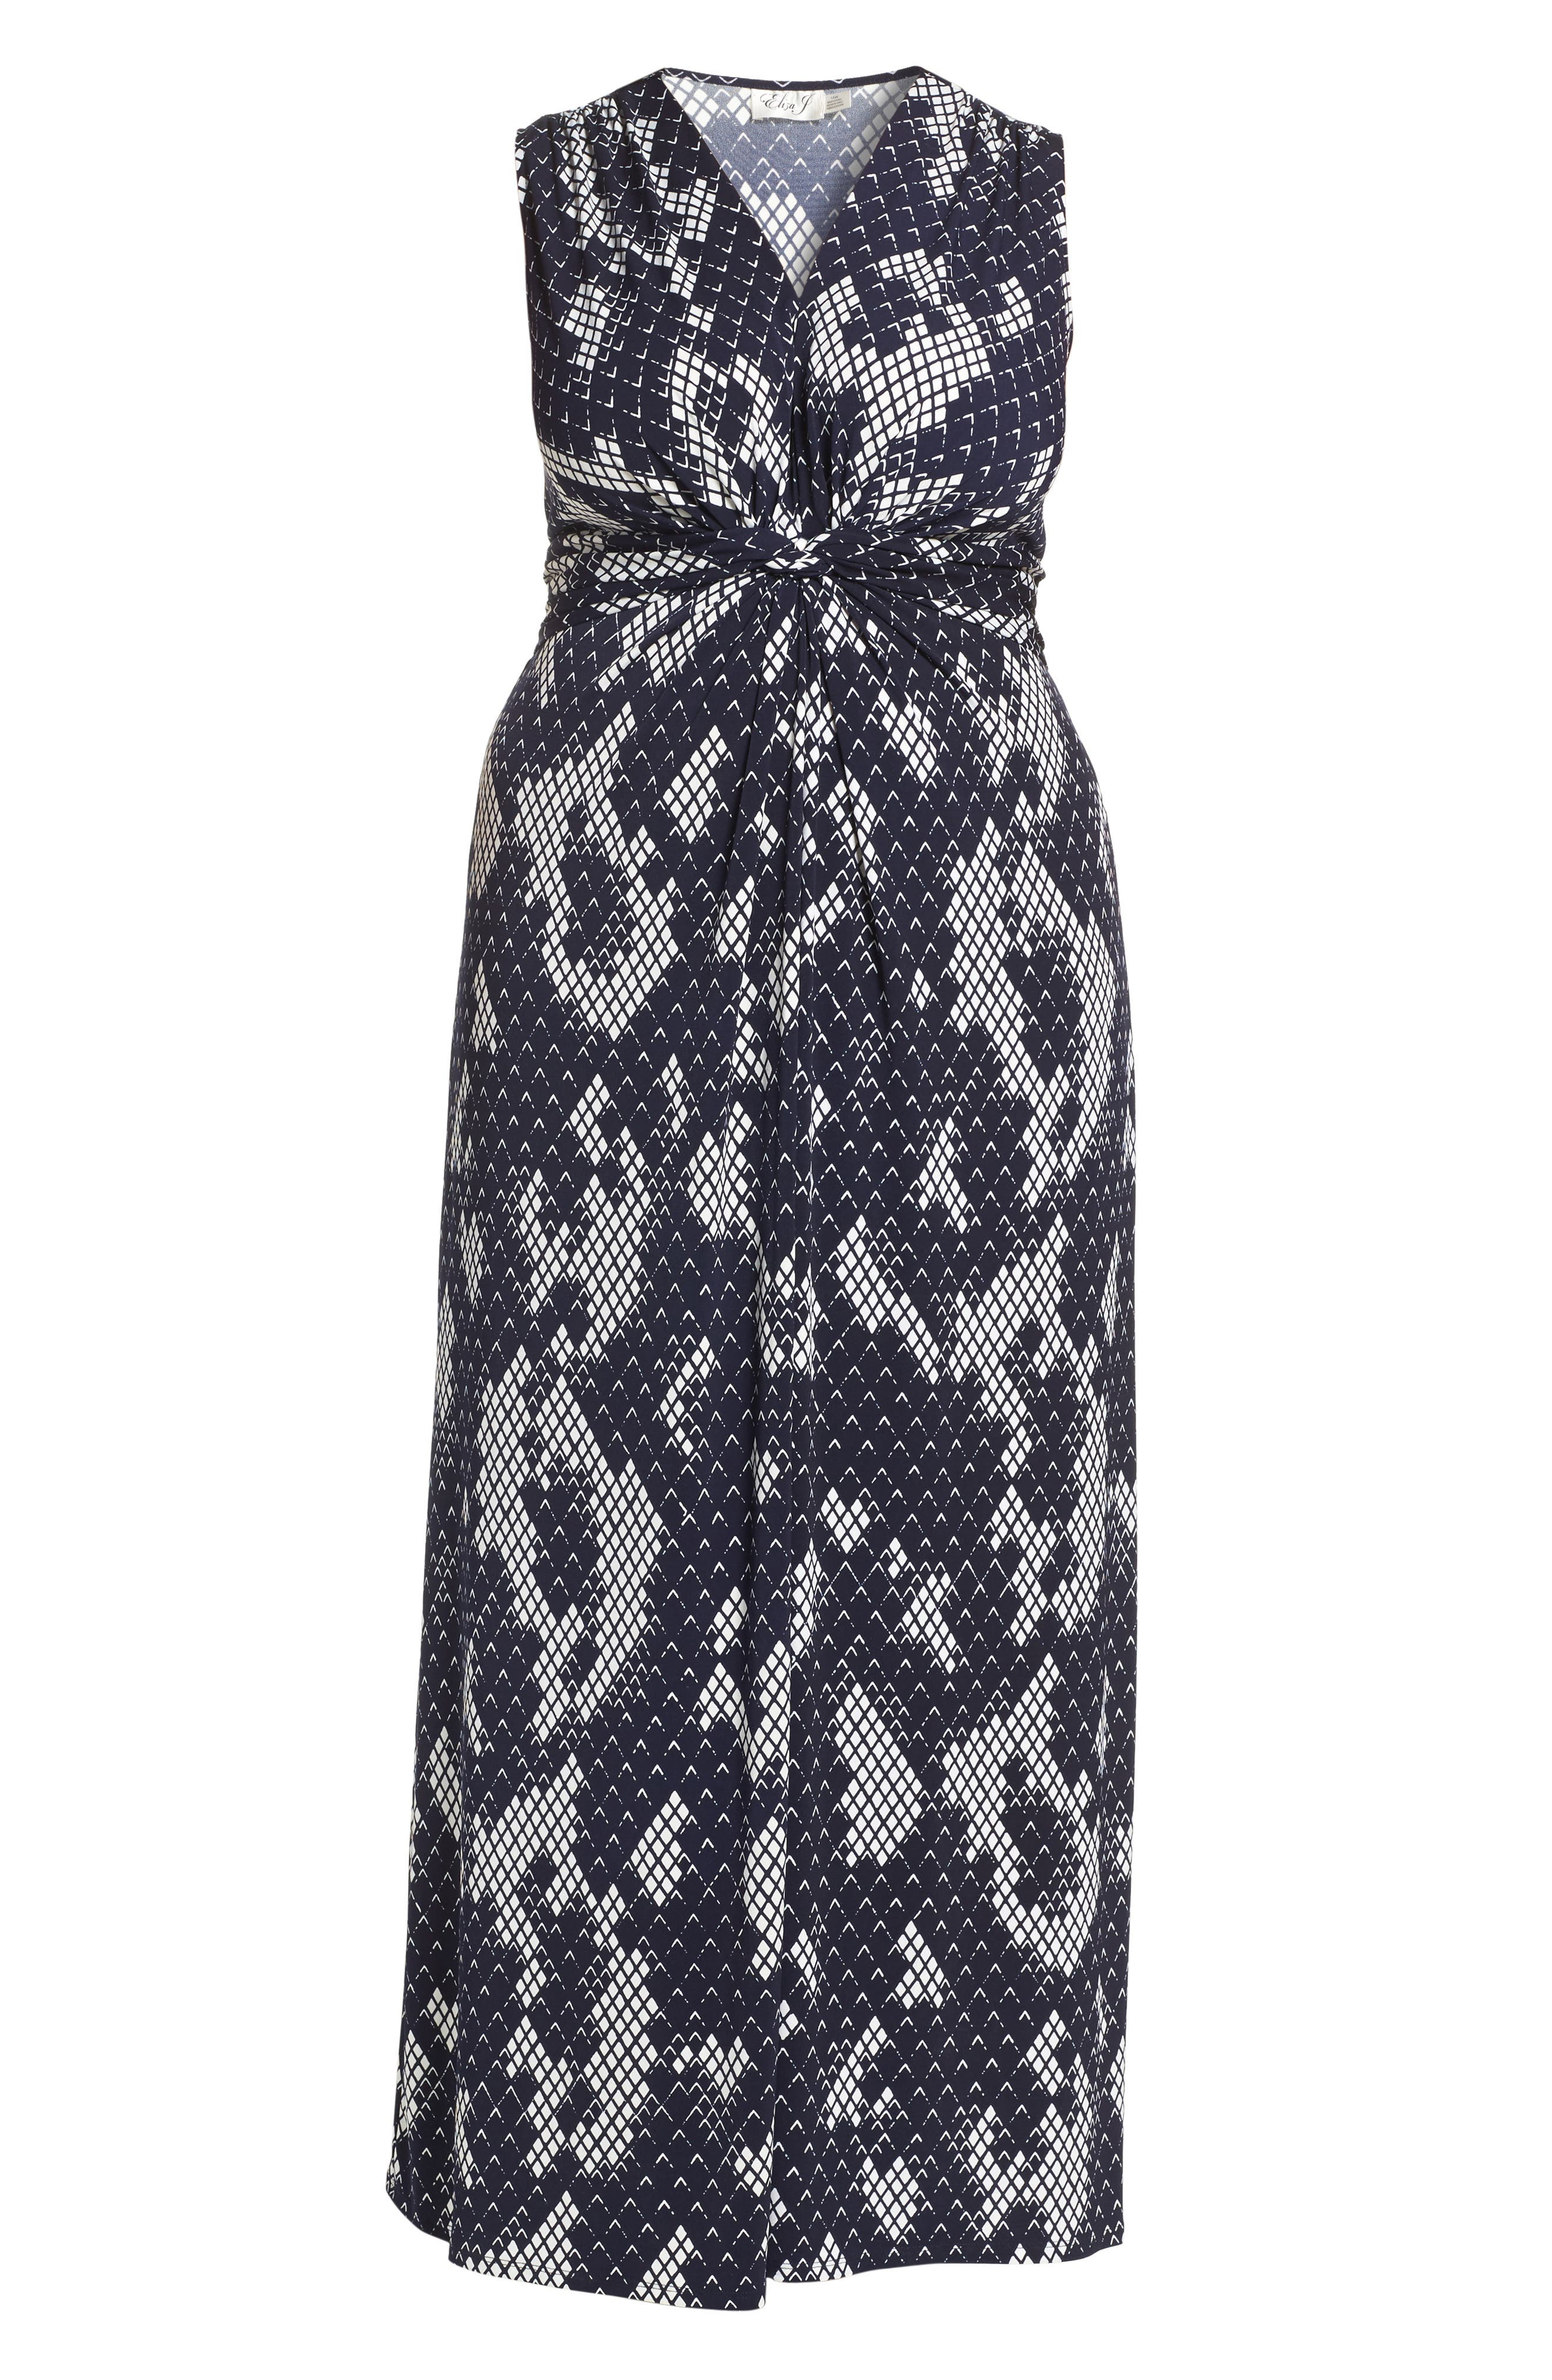 Knot Front Maxi Dress,                             Alternate thumbnail 6, color,                             NAVY/ IVORY